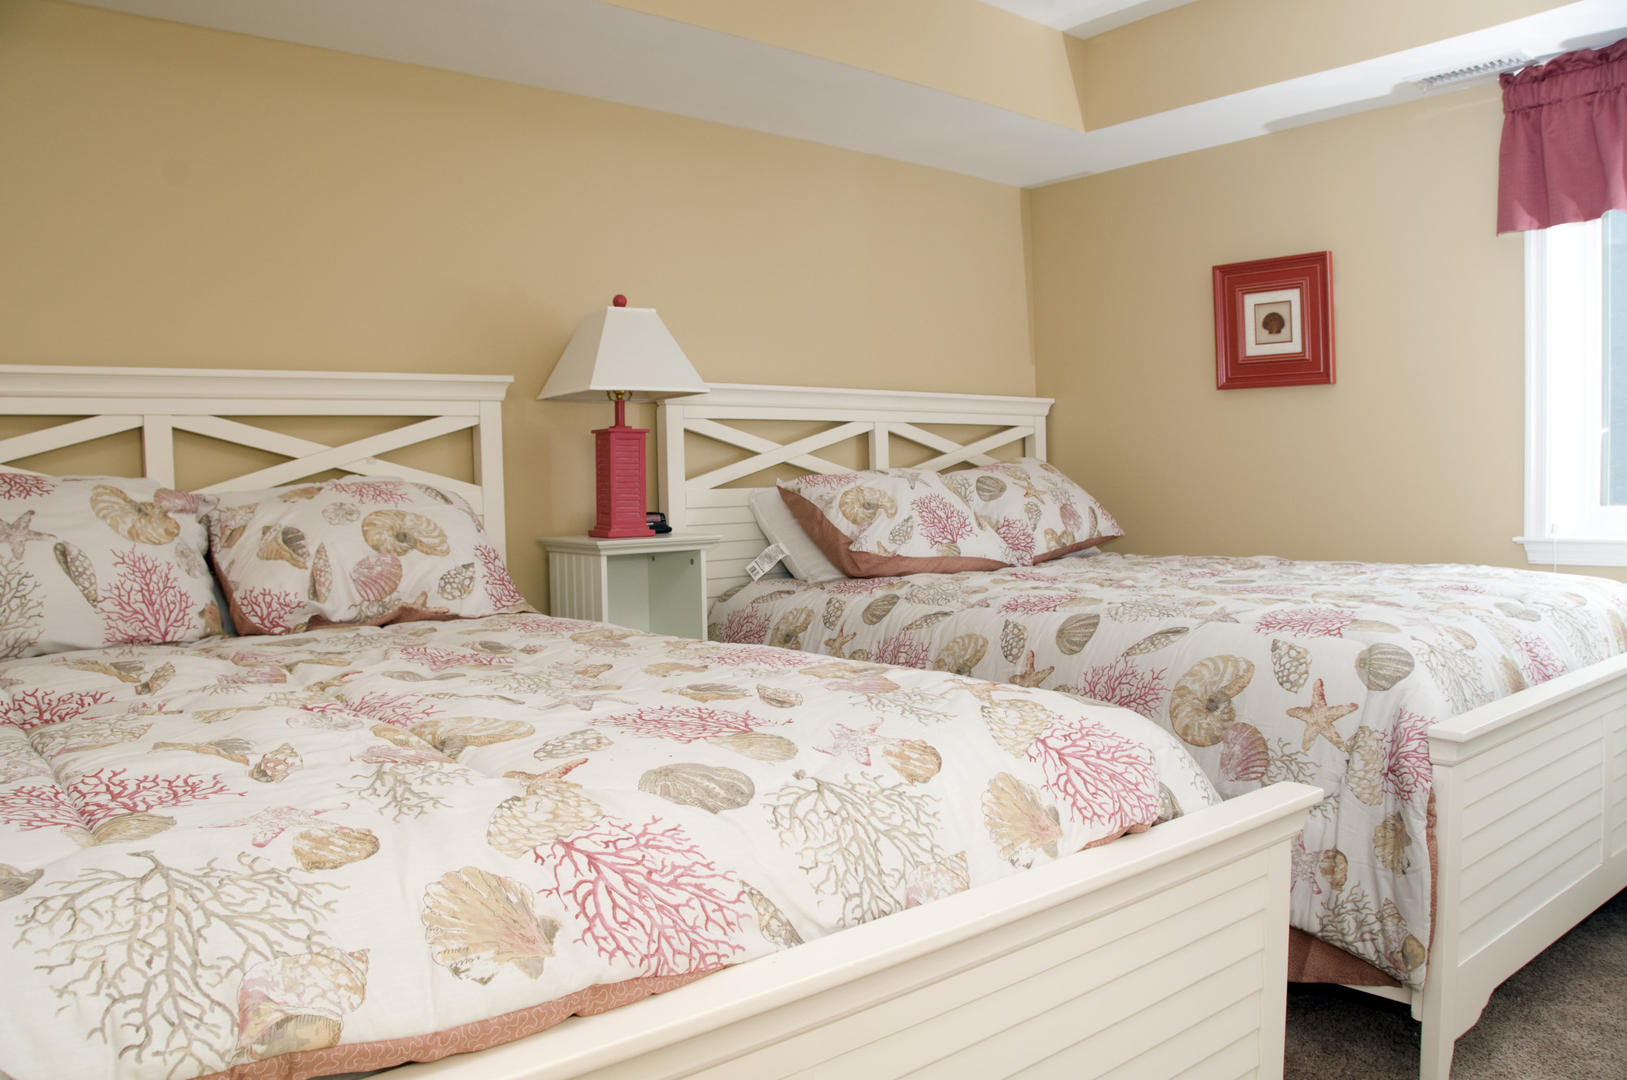 OC Boardwalk Suites S2 - Bedroom 2